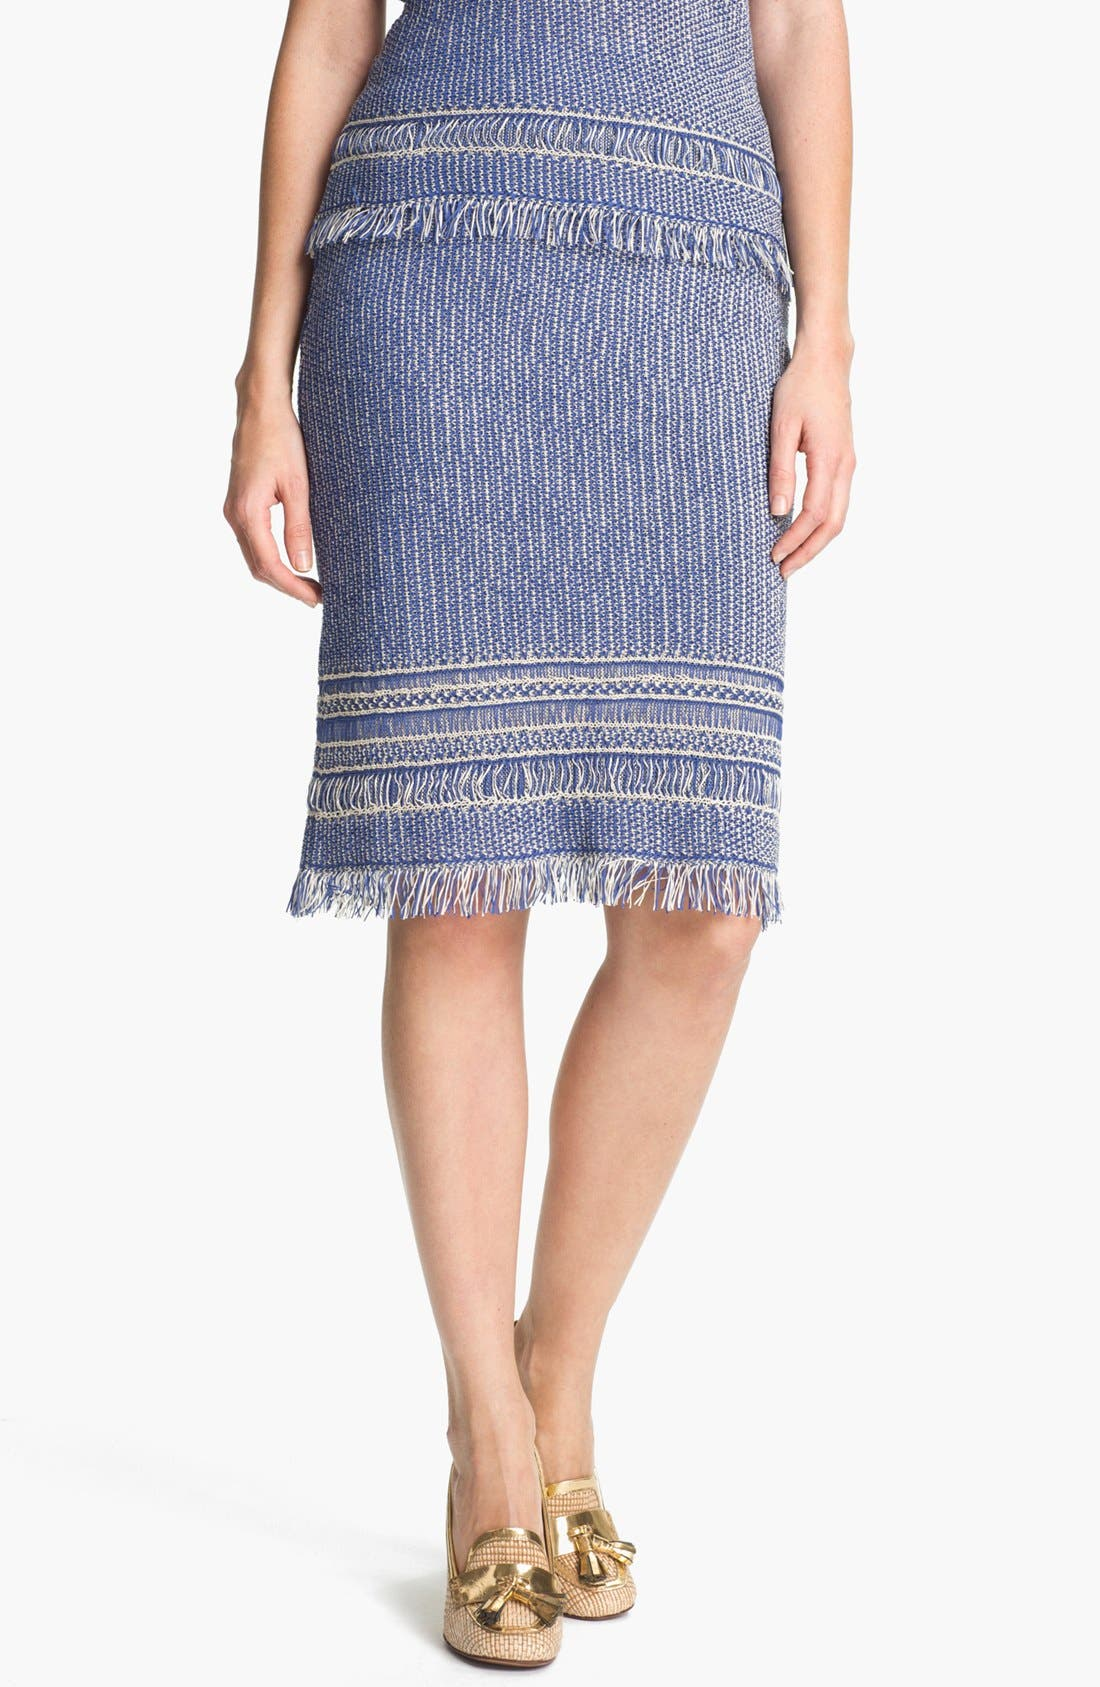 Alternate Image 1 Selected - Tory Burch 'Brielle' Skirt